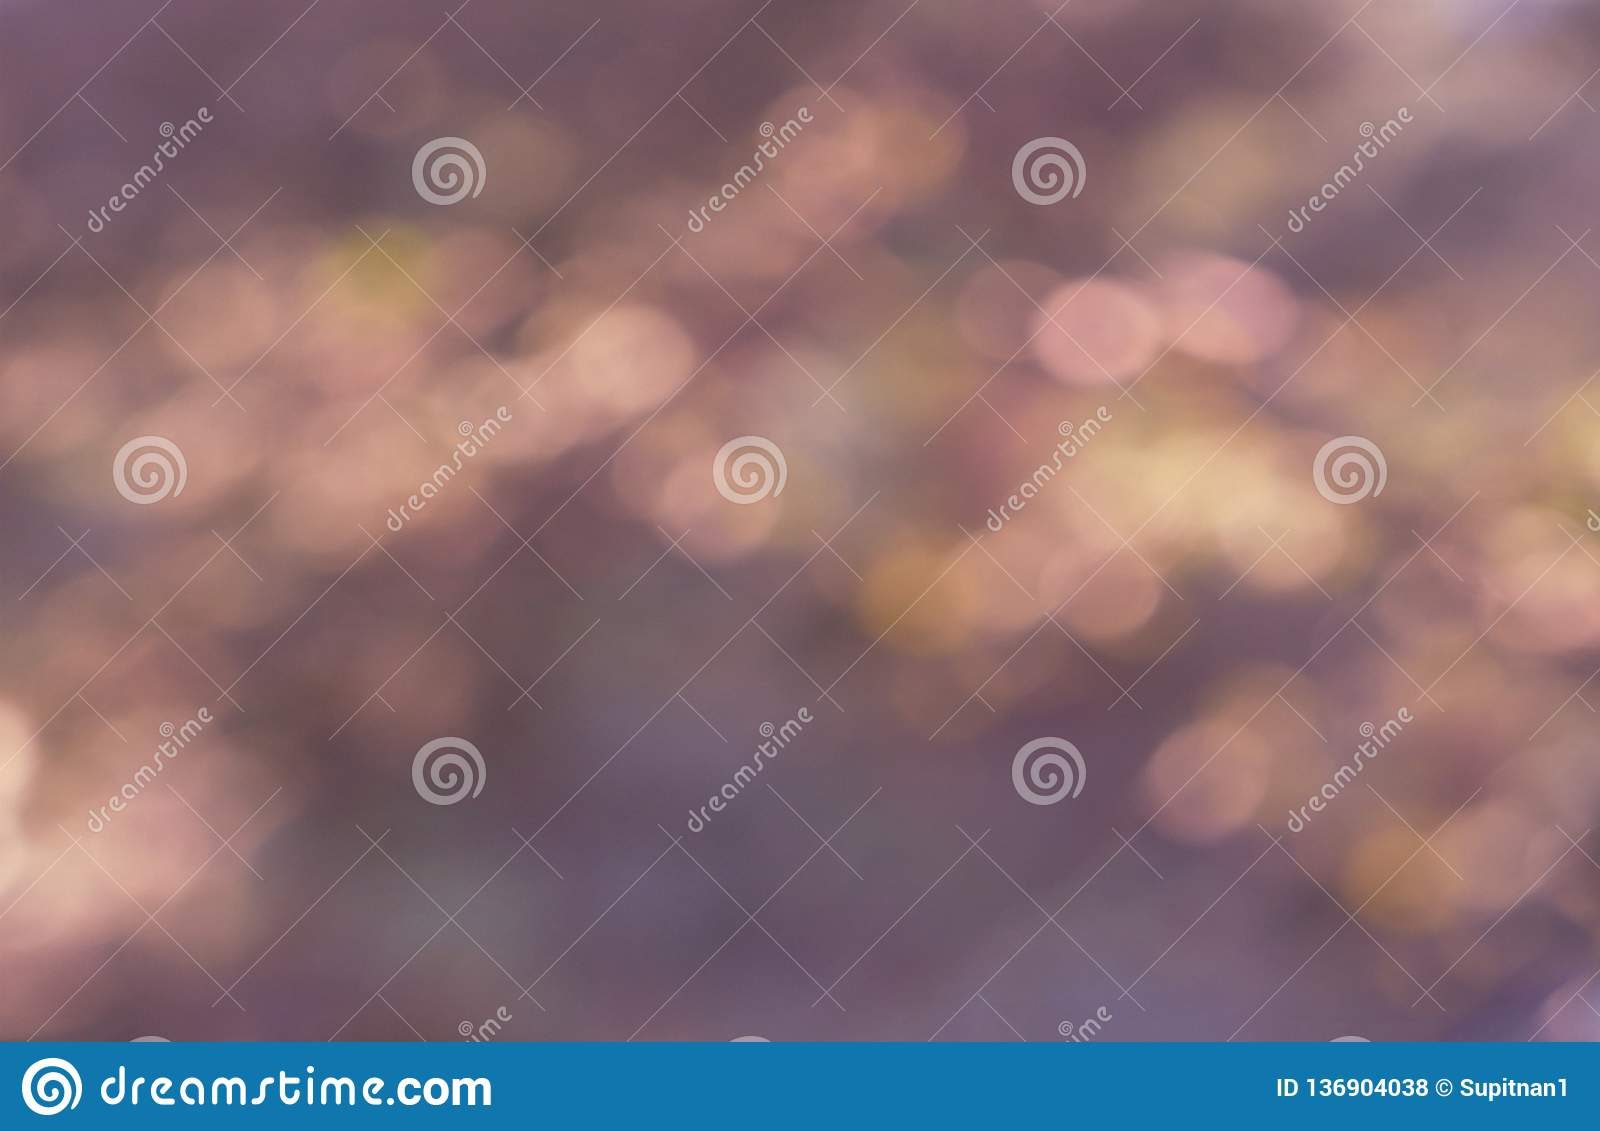 Bokeh abstract light pink background image texture retro for Valentine's day